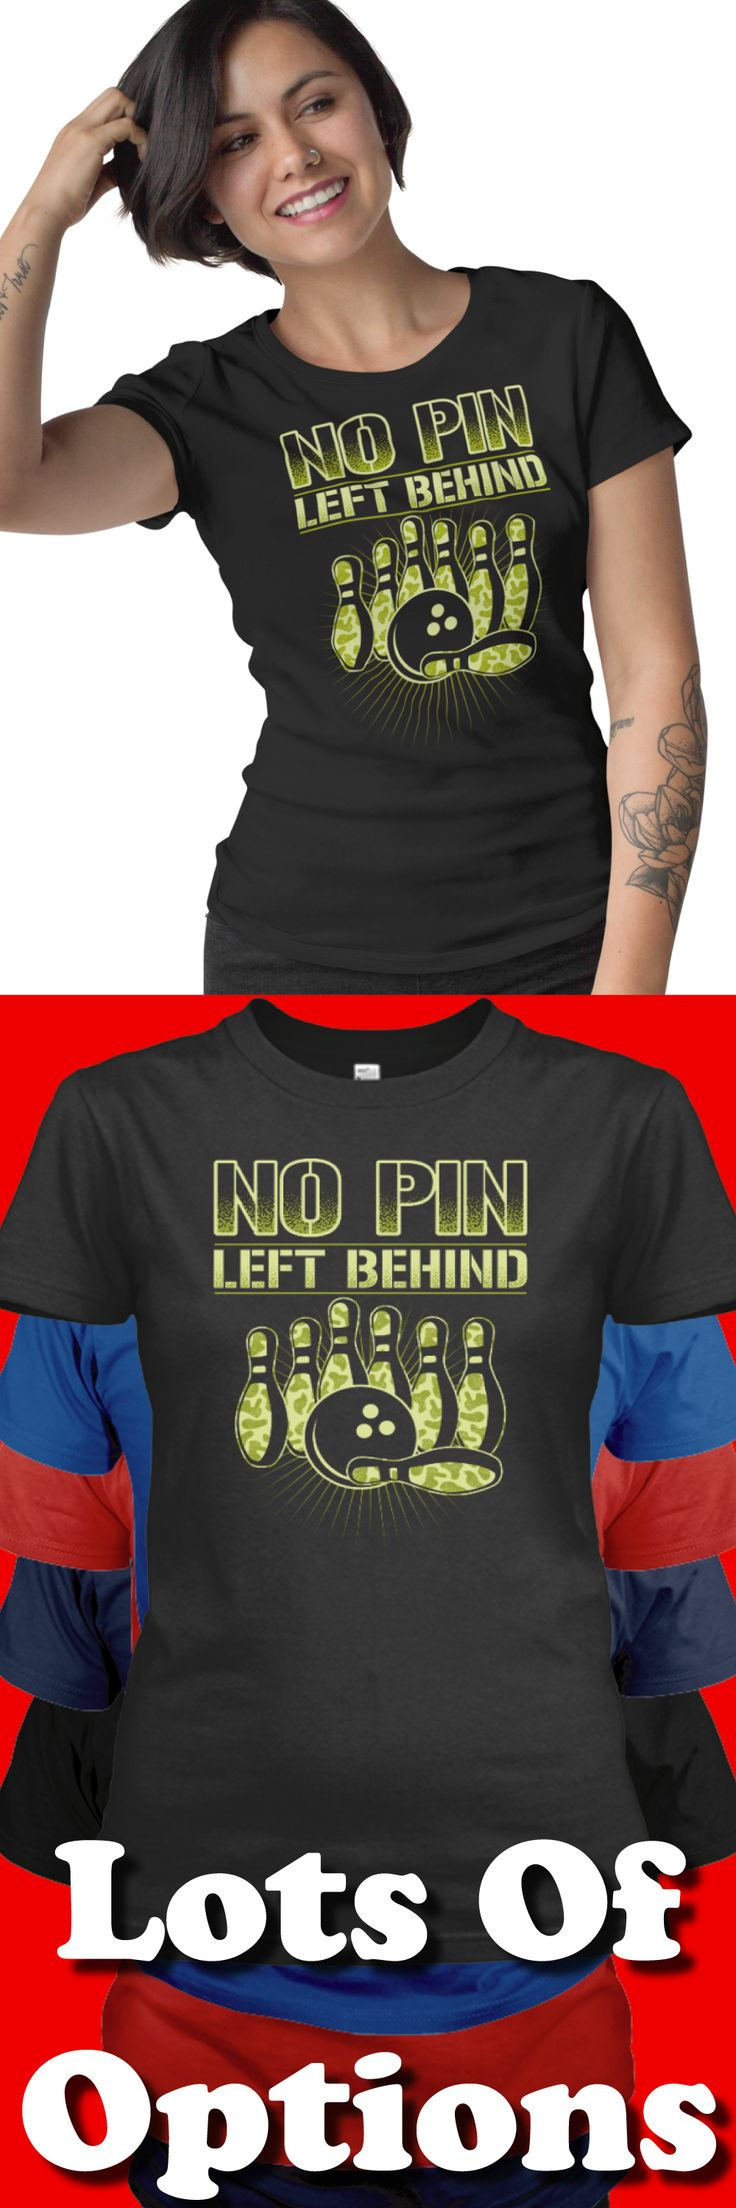 Bowling Shirts: Do You Love Bowling? Great Bowling Gift! Lots Of Sizes & Colors. Love Bowling? Love Funny Bowling Shirts? Wear Bowling Shirts? Strict Limit Of 5 Shirts! Treat Yourself & Click Now! https://teespring.com/BG85-959